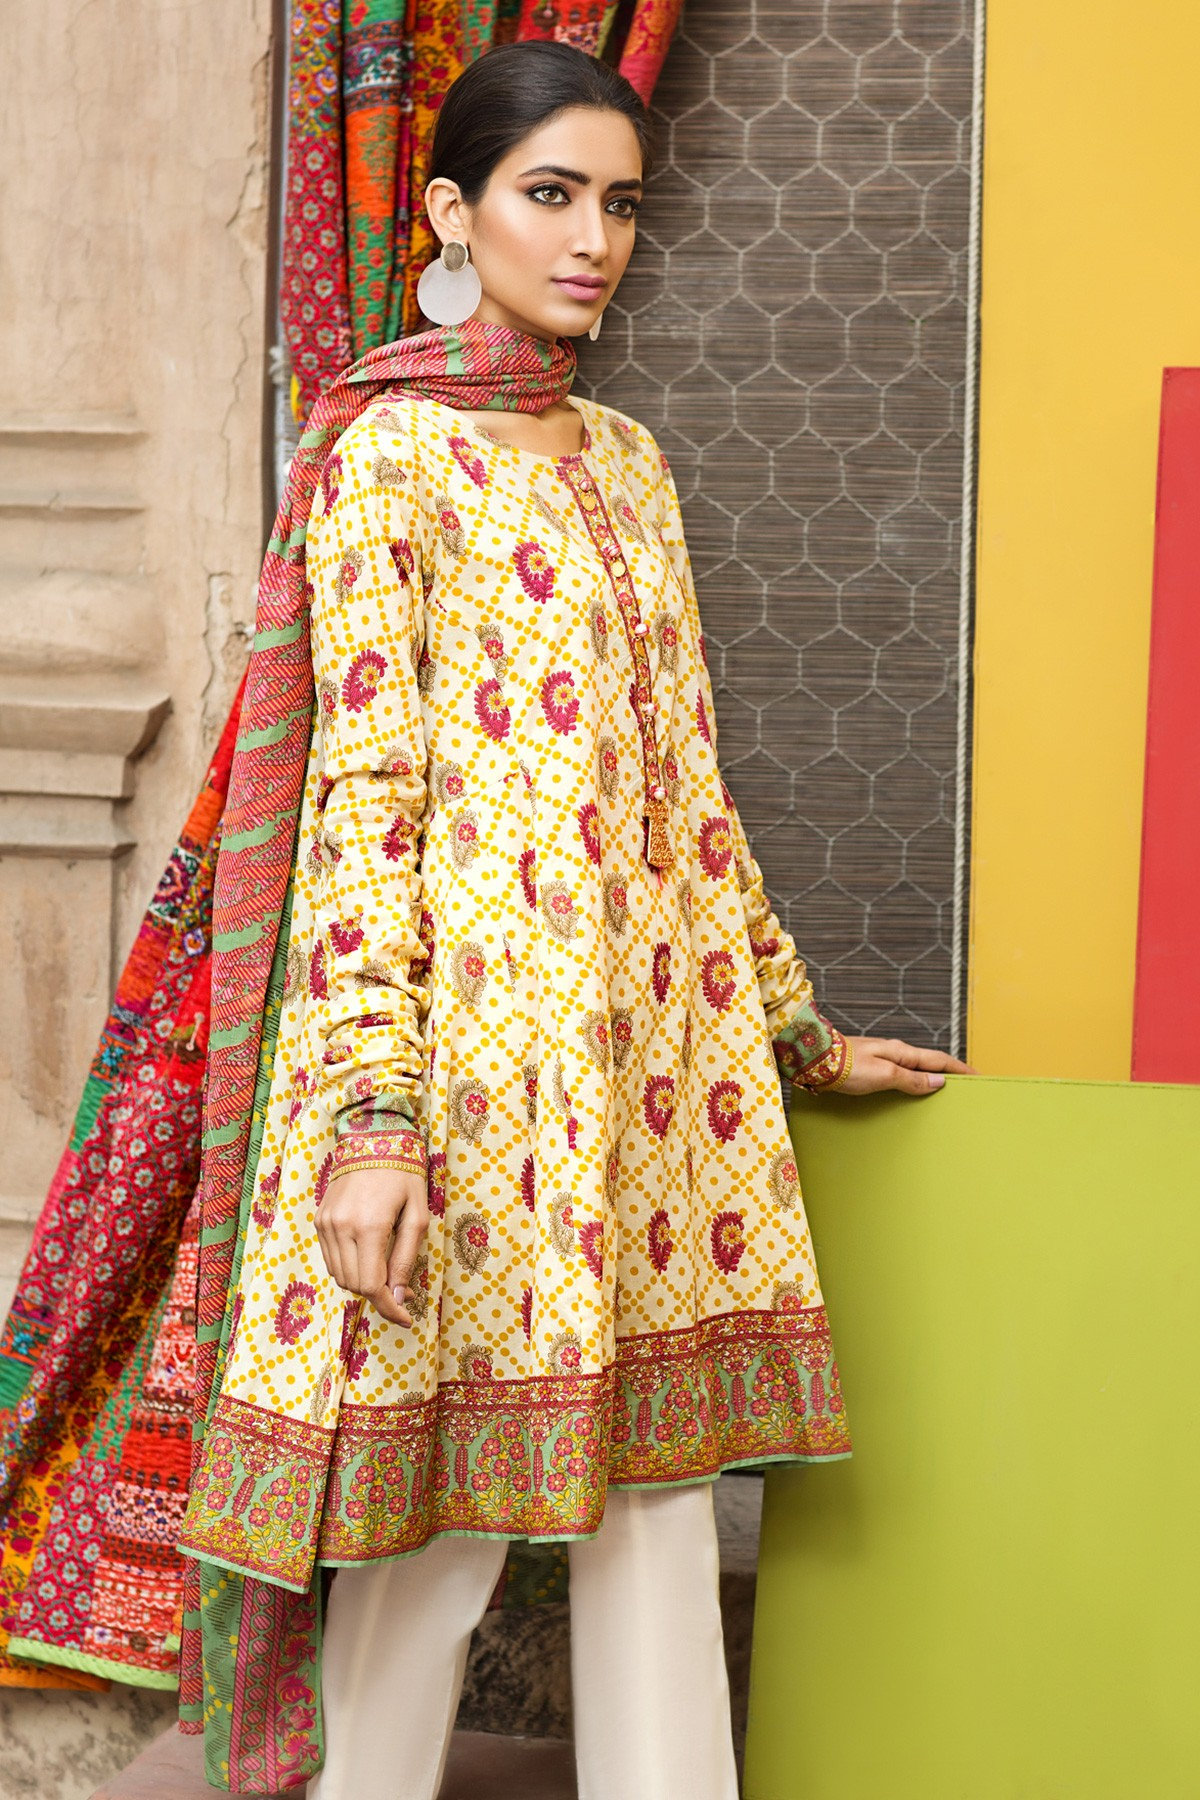 Warda Summer Dresses Collection This is my personal favorite clothing brand and it is also exposing its Warda collection of lawn prints for Girls. These prints are just according to new fashion and they will be the first choice of every woman.